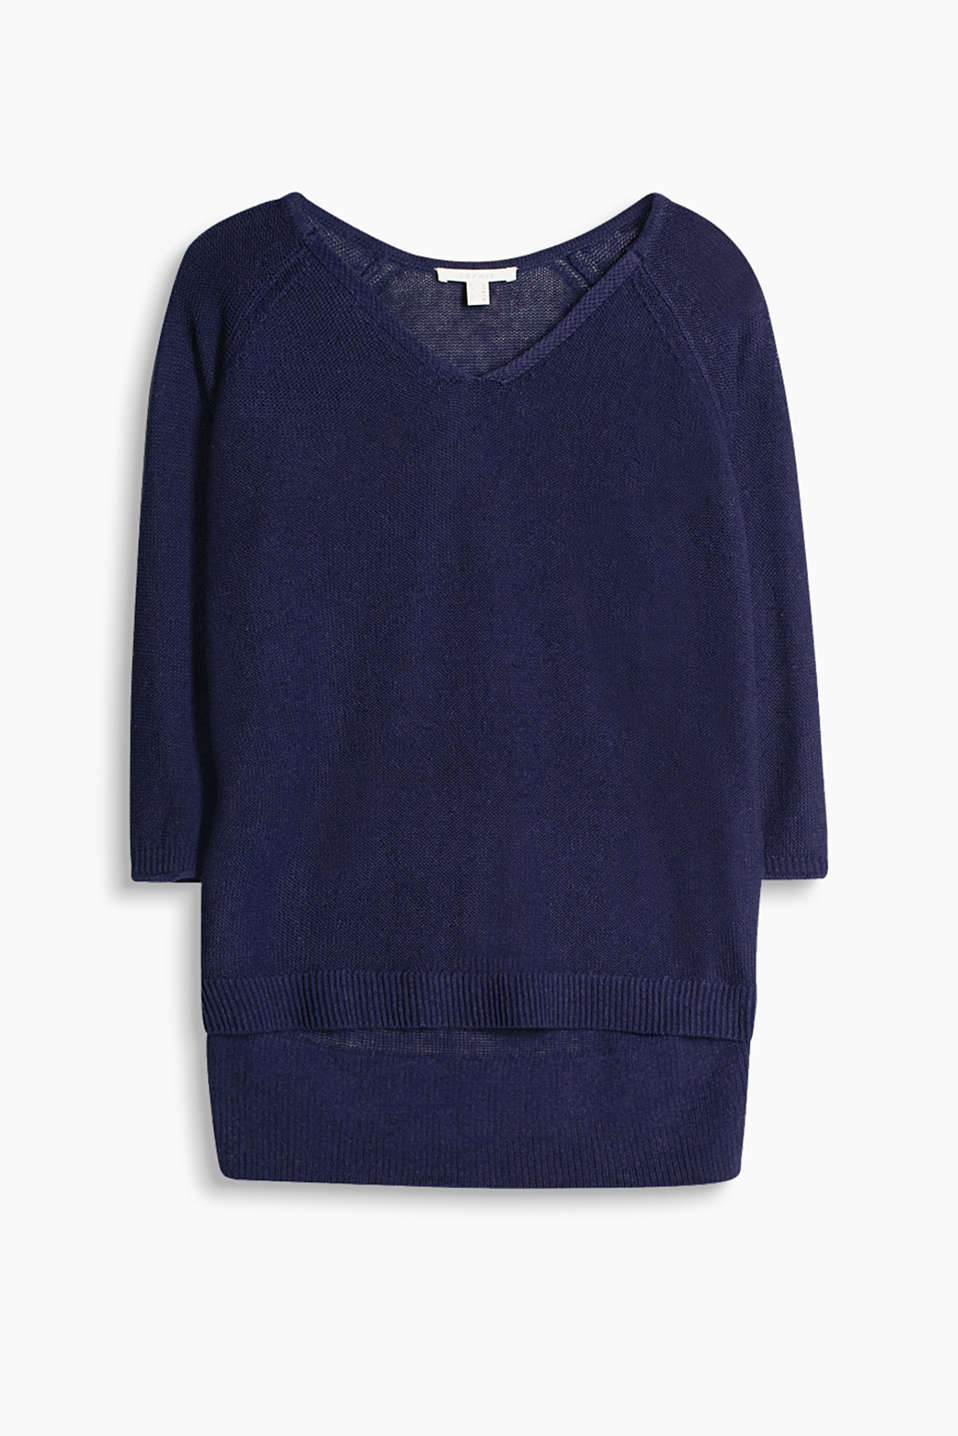 Boxy jumper in high-quality blended fabric with three-quarter sleeves